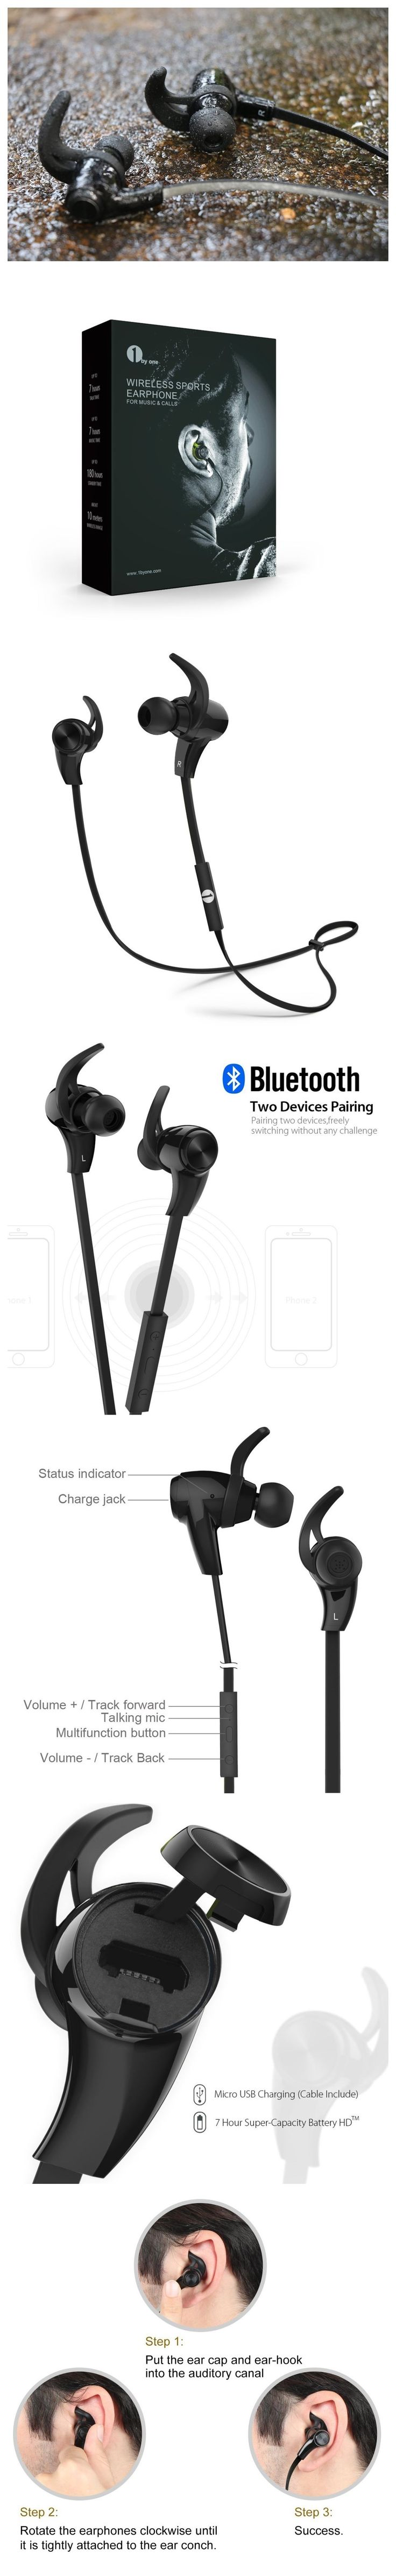 Only $26.96,1byone Bluetooth 4.1 Wireless In-Ear Headphones, Sports Earphones with HD Stereo Sound & Modern, Sweat-Proof and Ergonomic Design, Black